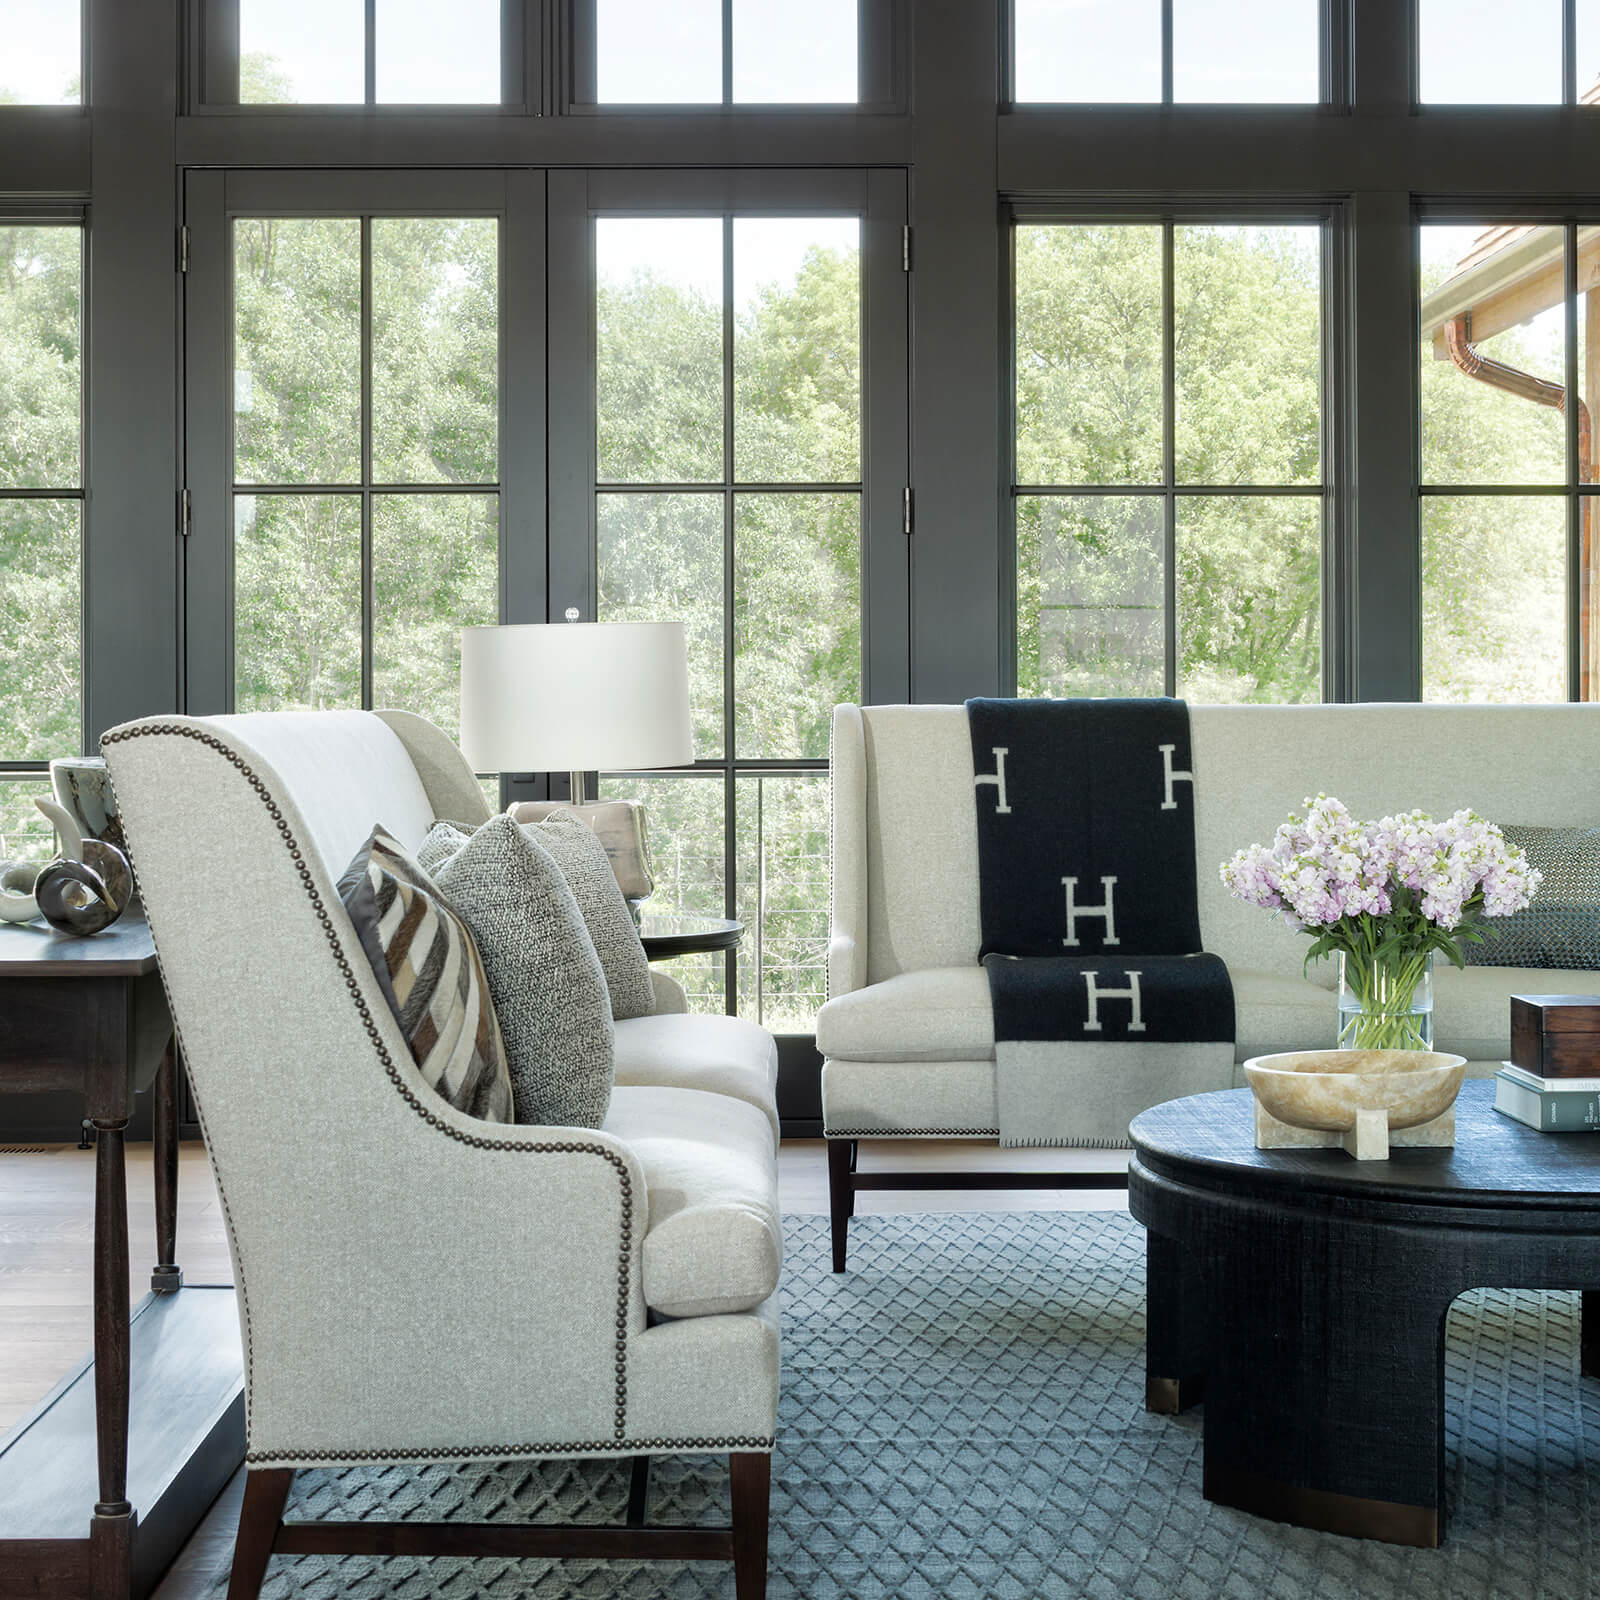 Living room with Marvin Signature Ultimate Casement Windows and Ultimate Inswing French Door